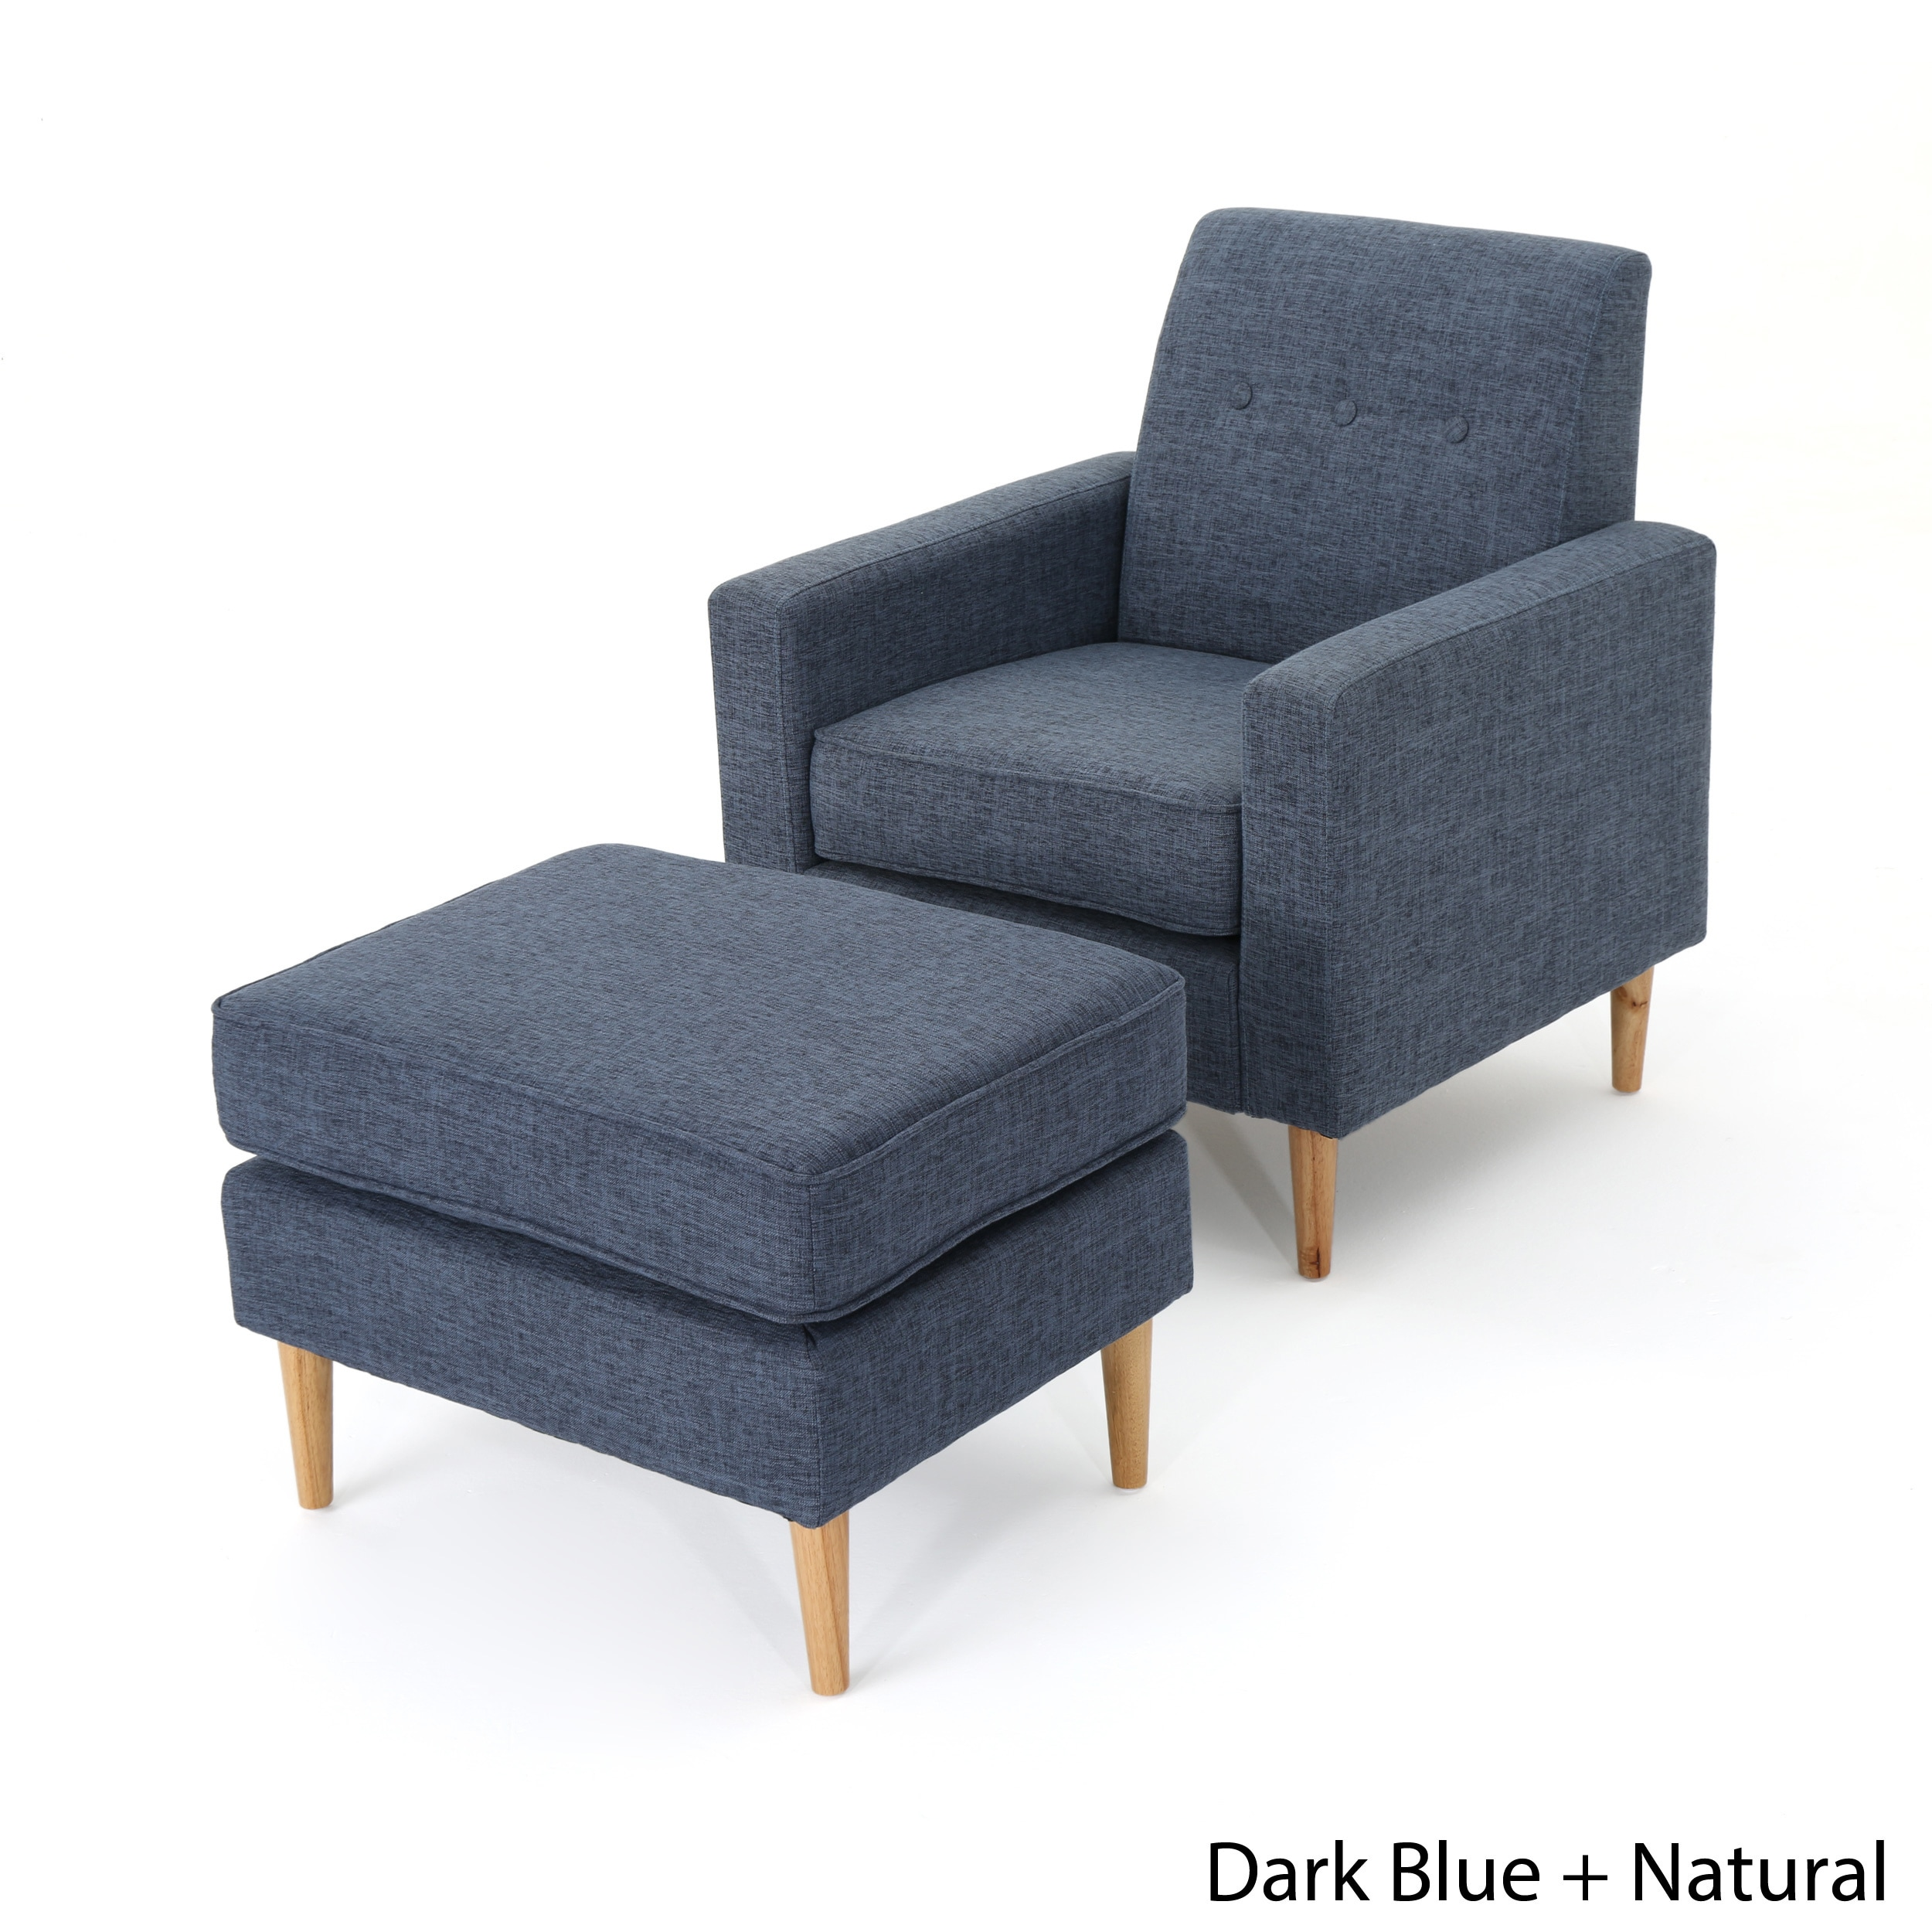 Shop sawyer mid century modern fabric club chair ottoman set by christopher knight home on sale free shipping today overstock com 18158872